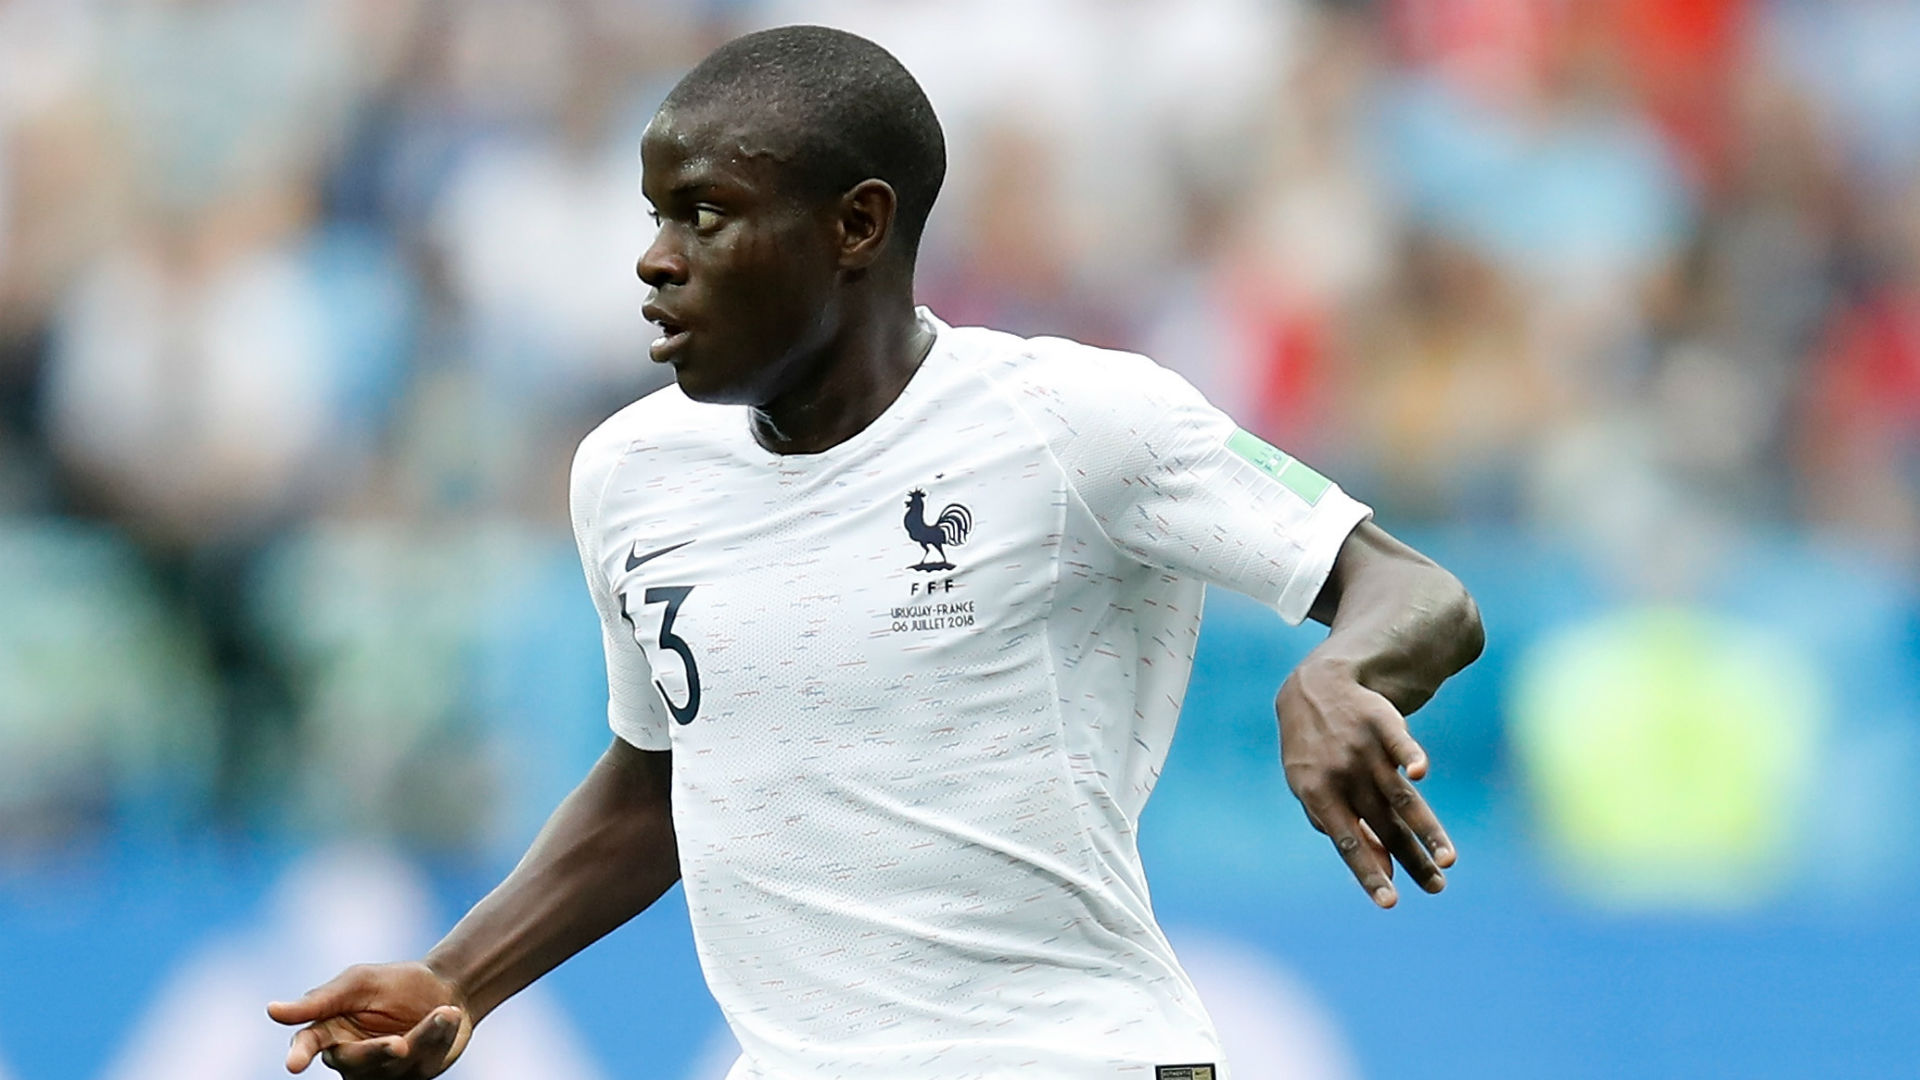 N'Golo Kante France World Cup 2018